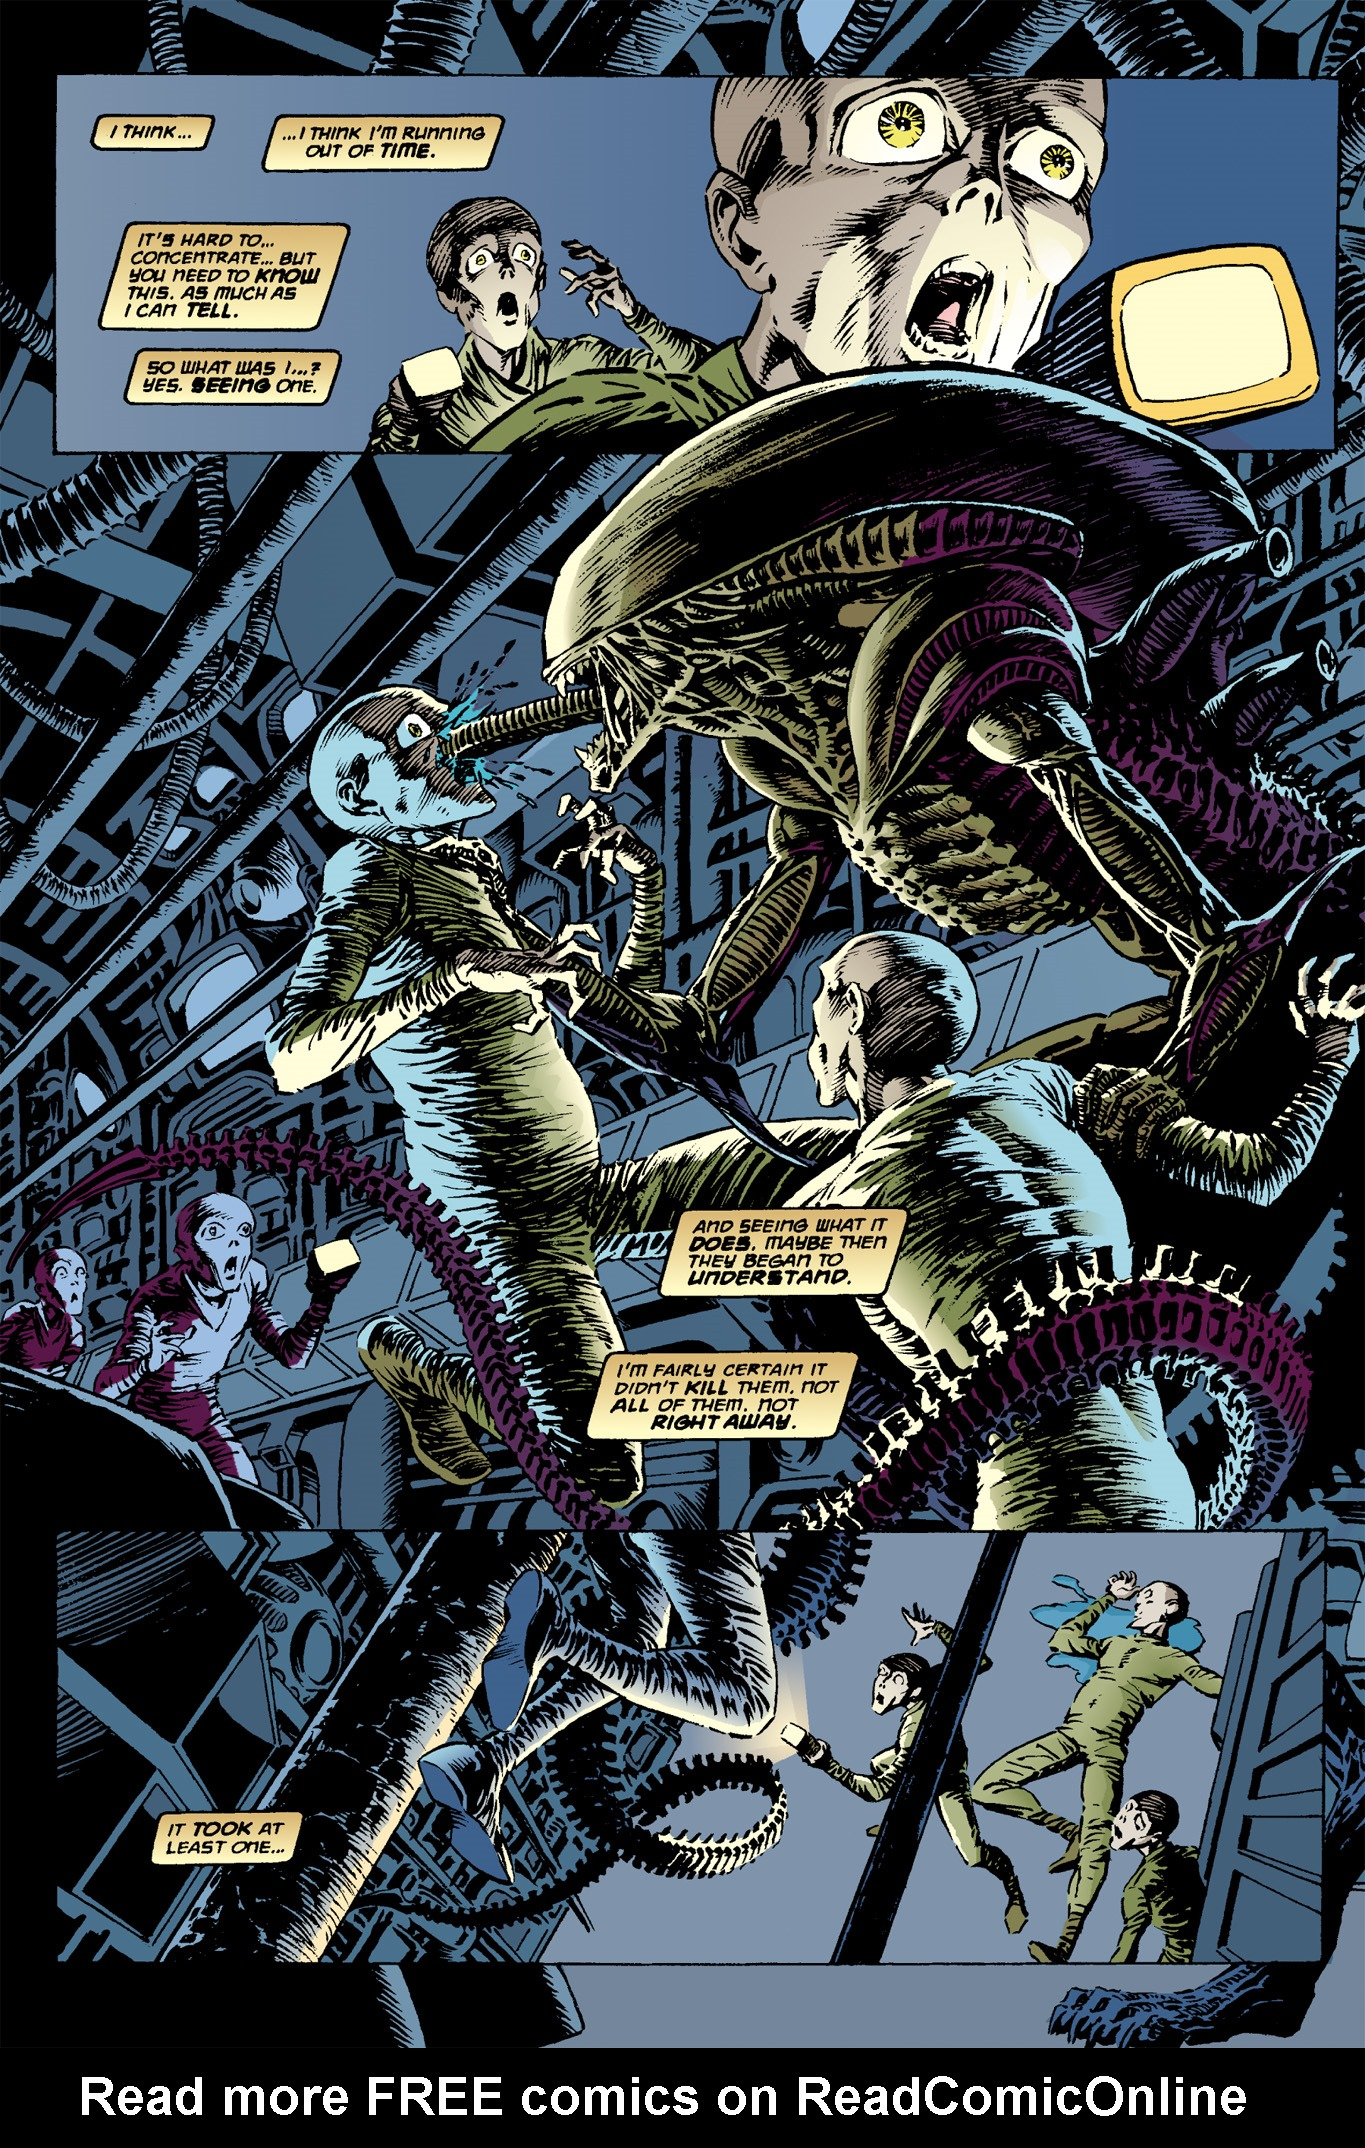 Read online Aliens: Incubation/Lucky/Taste comic -  Issue # Full - 10